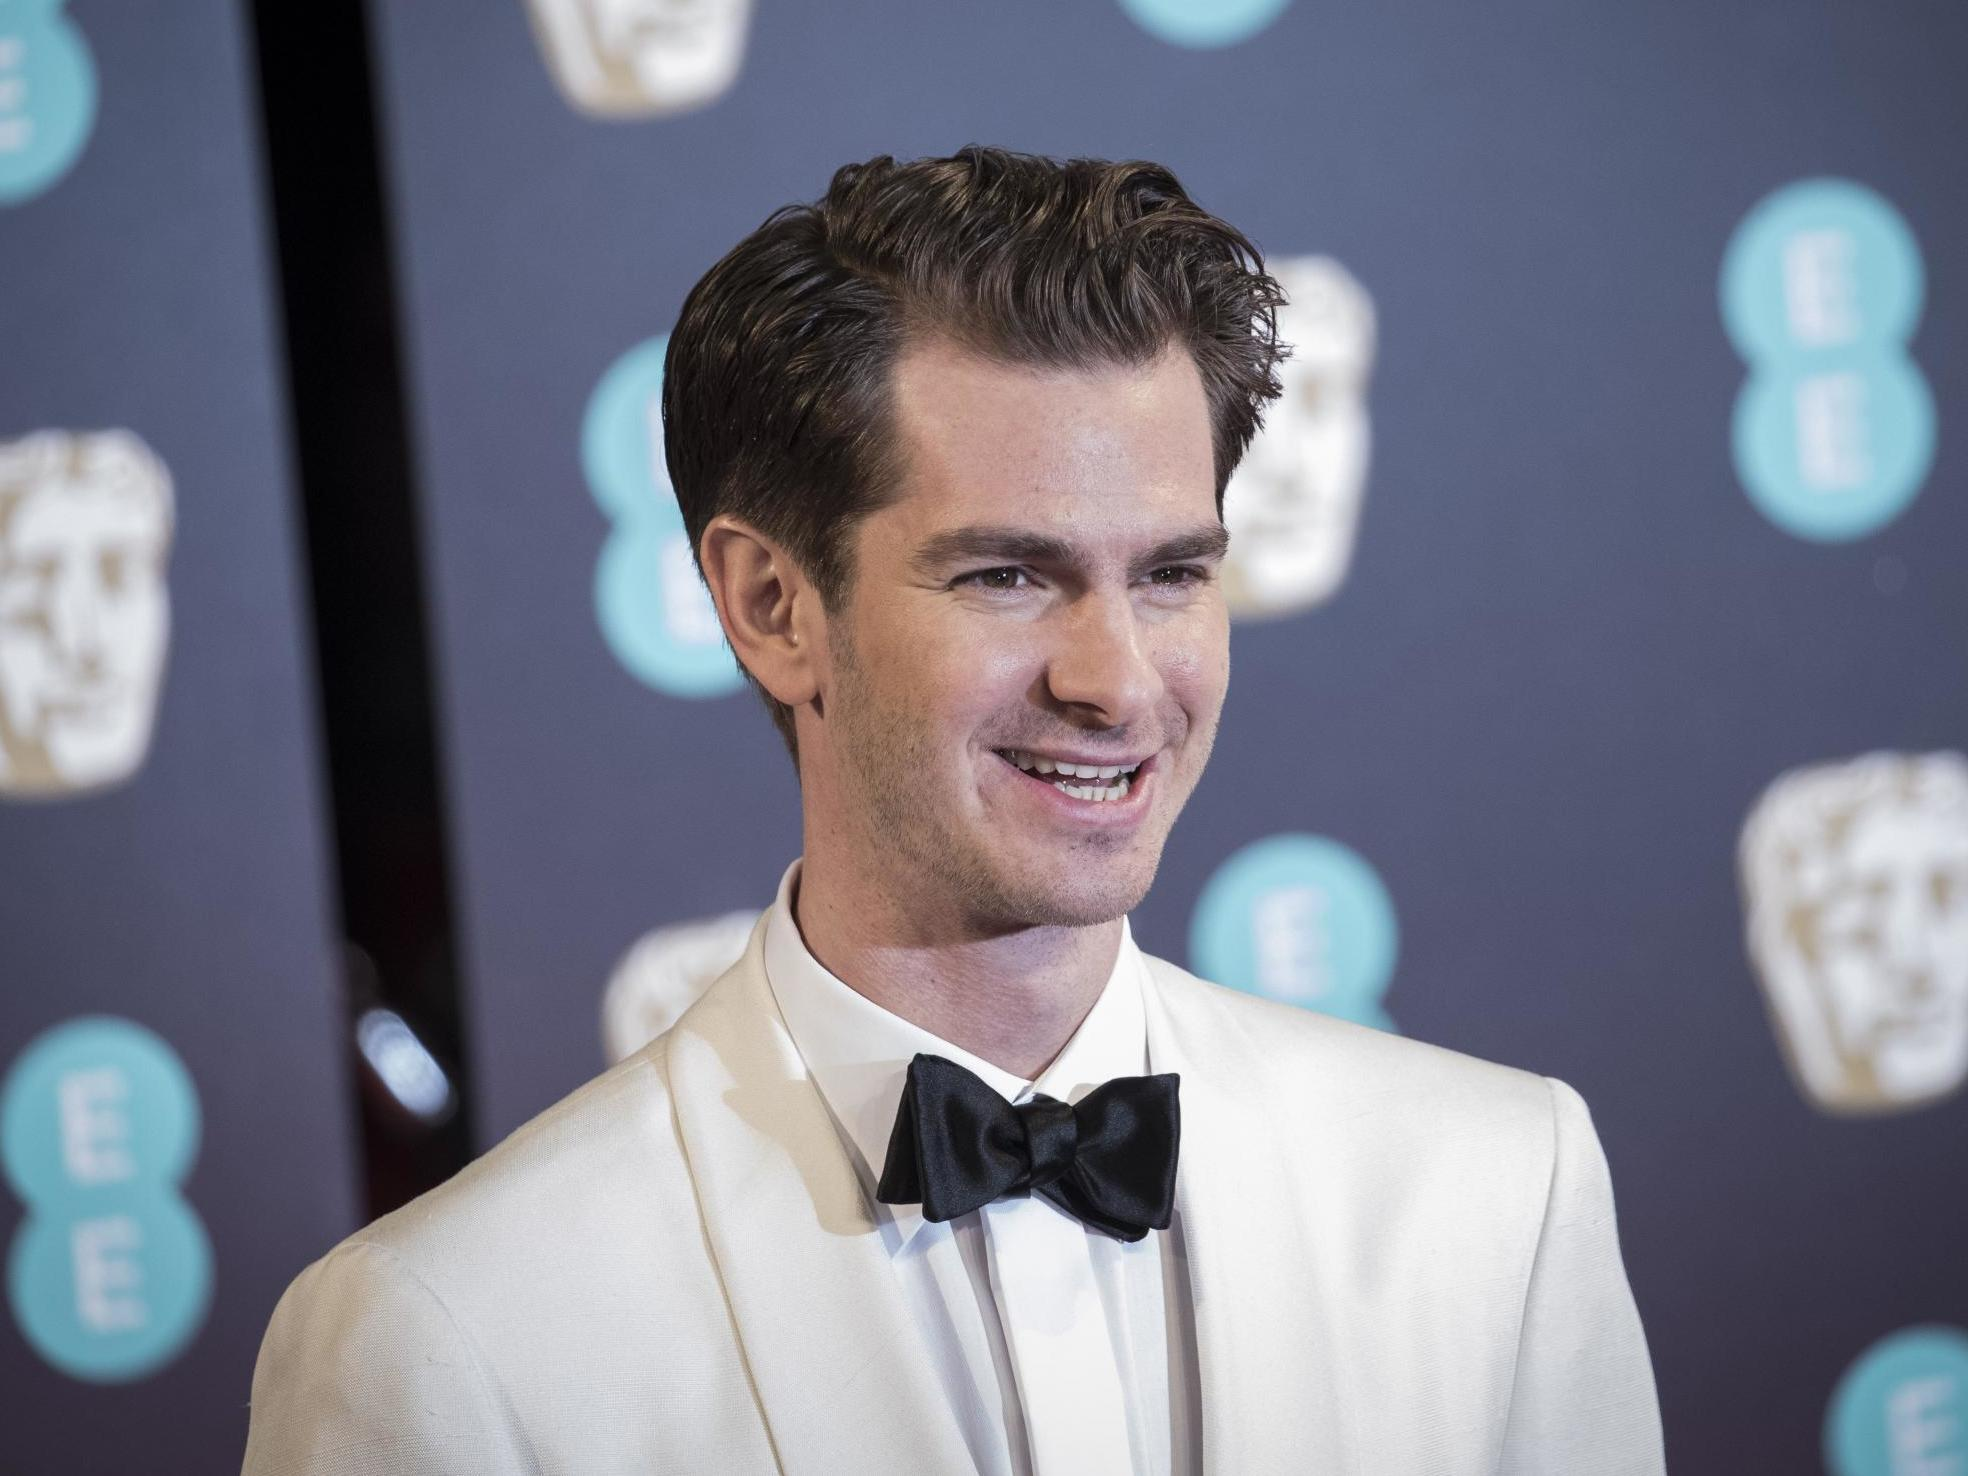 Andrew Garfield astounds RuPaul's Drag Race fans with oversized 'elephant' jeans